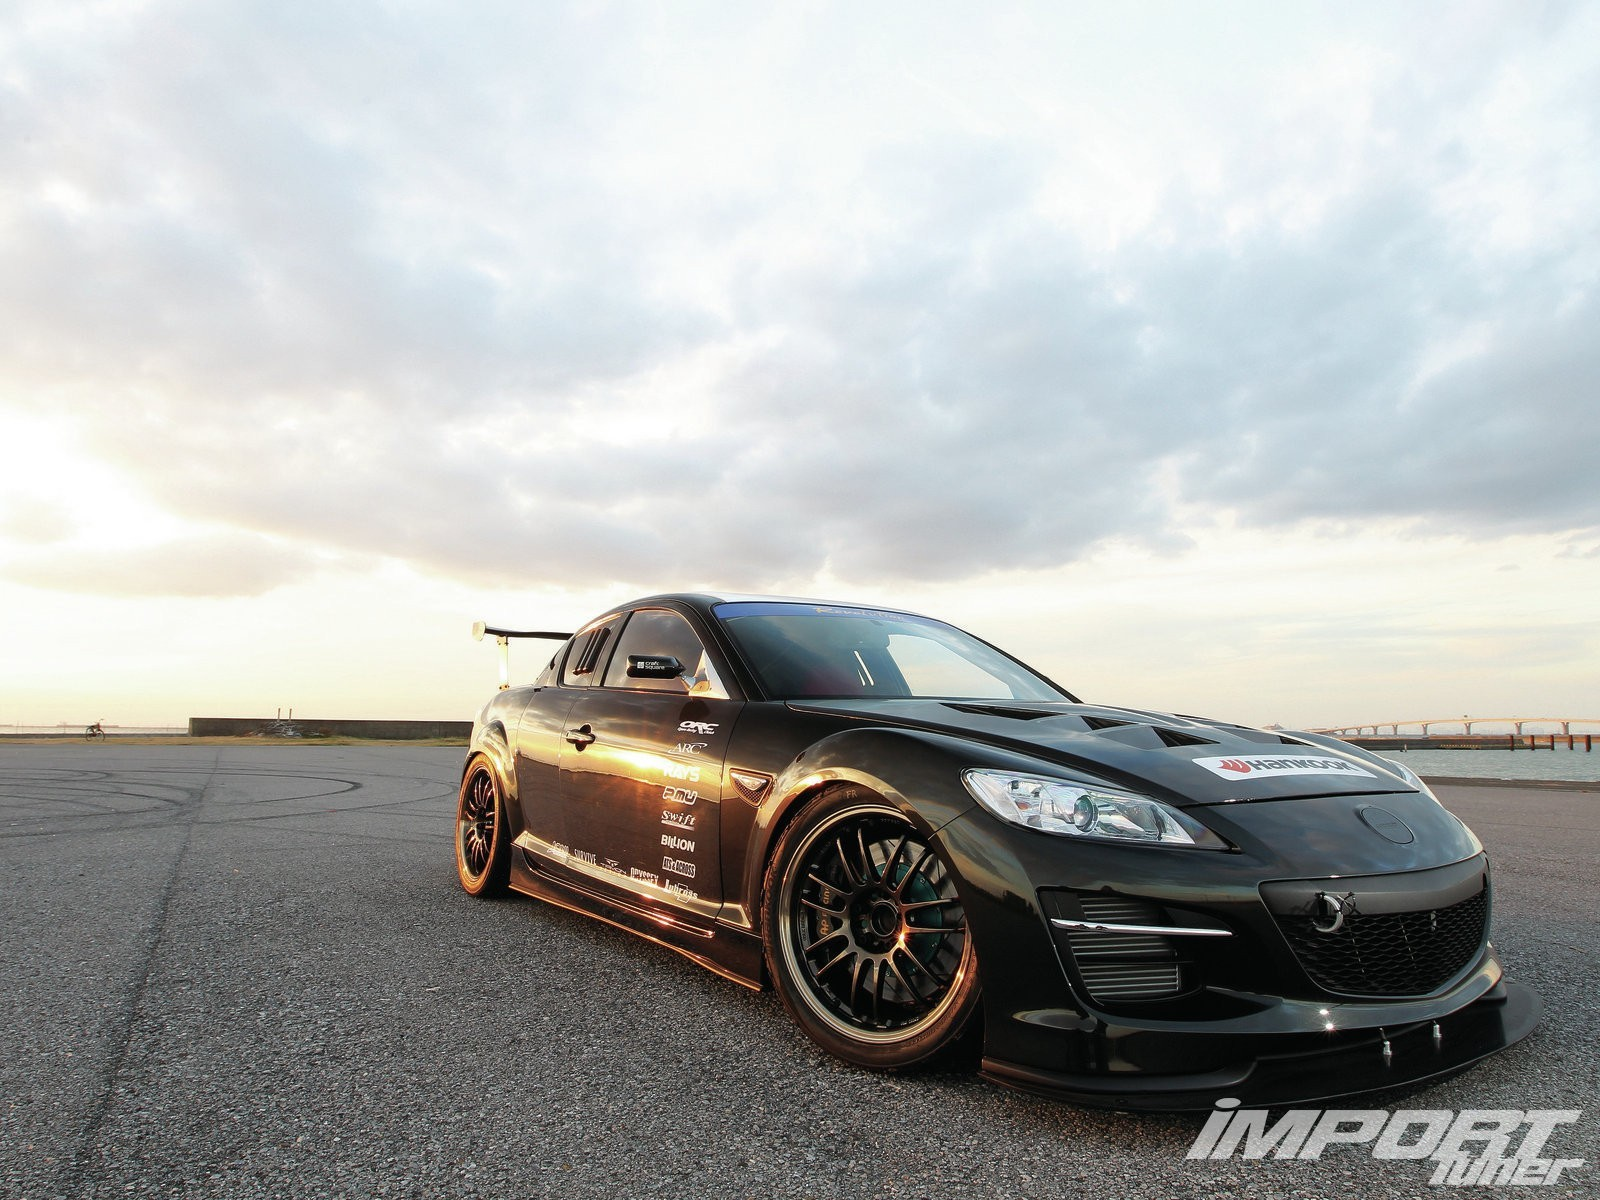 cars Mazda vehicles tuning HD Wallpaper